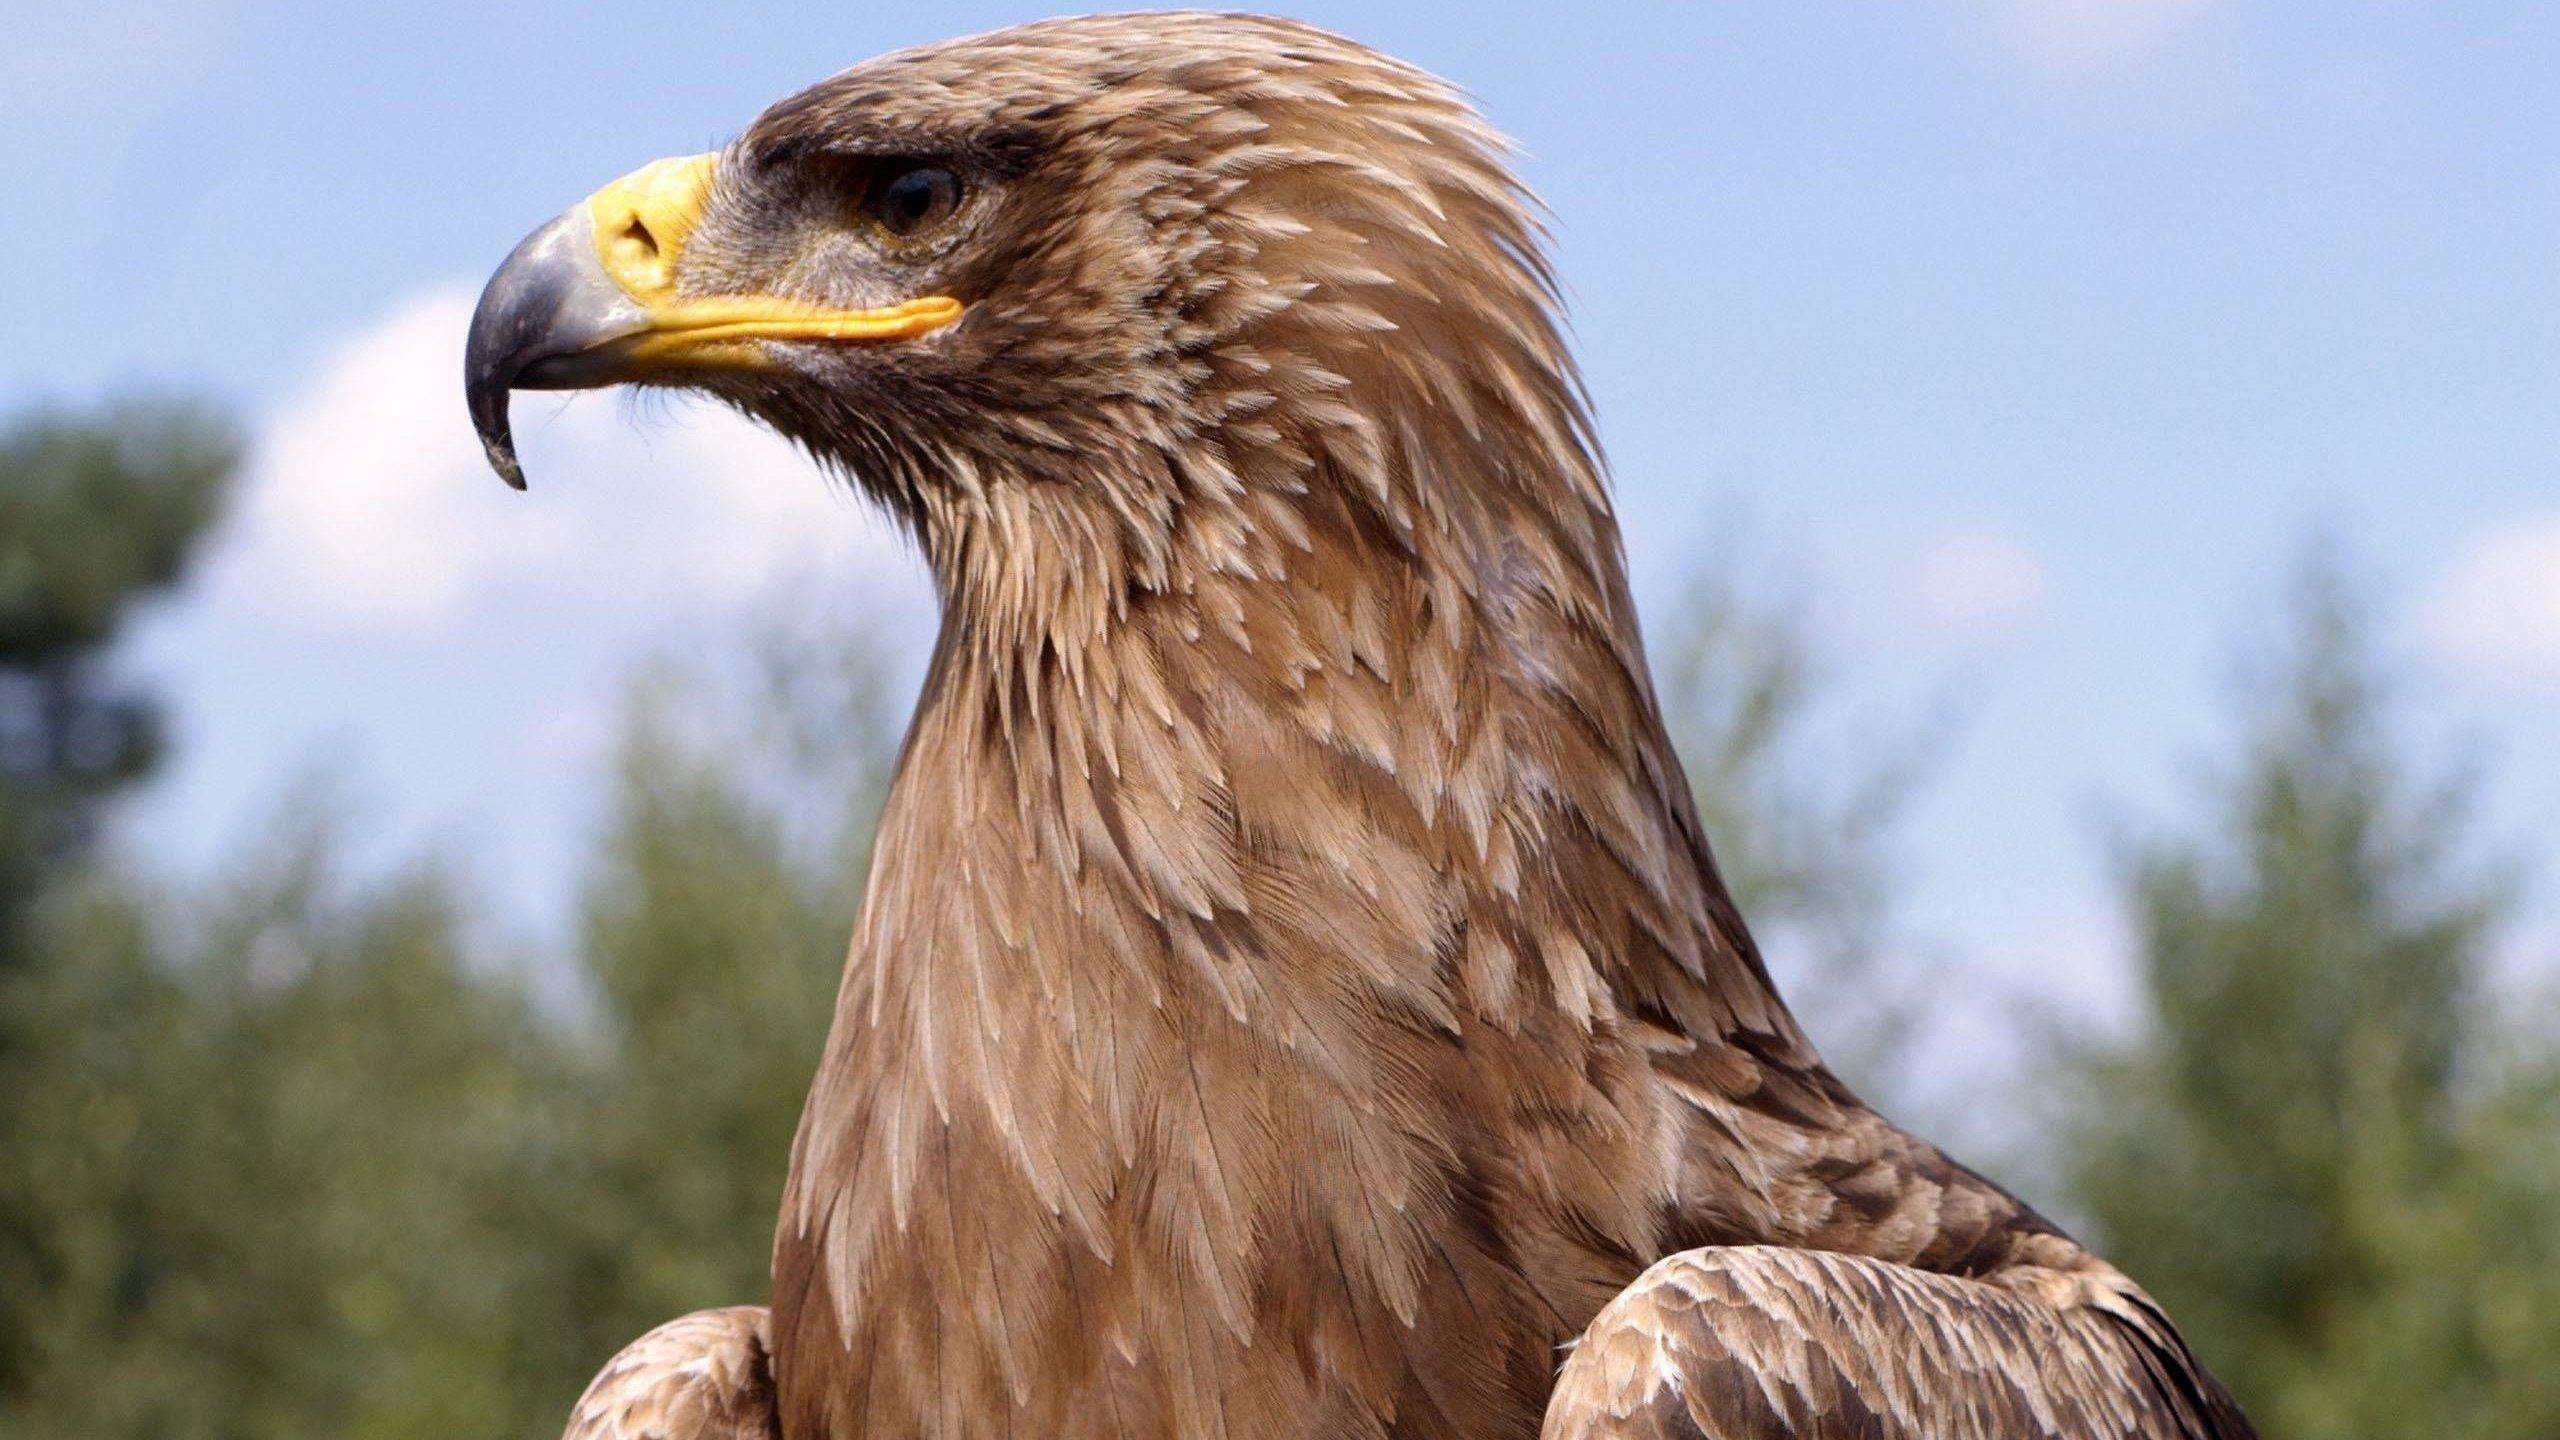 High resolution Golden Eagle hd 2560x1440 background ID:299814 for desktop